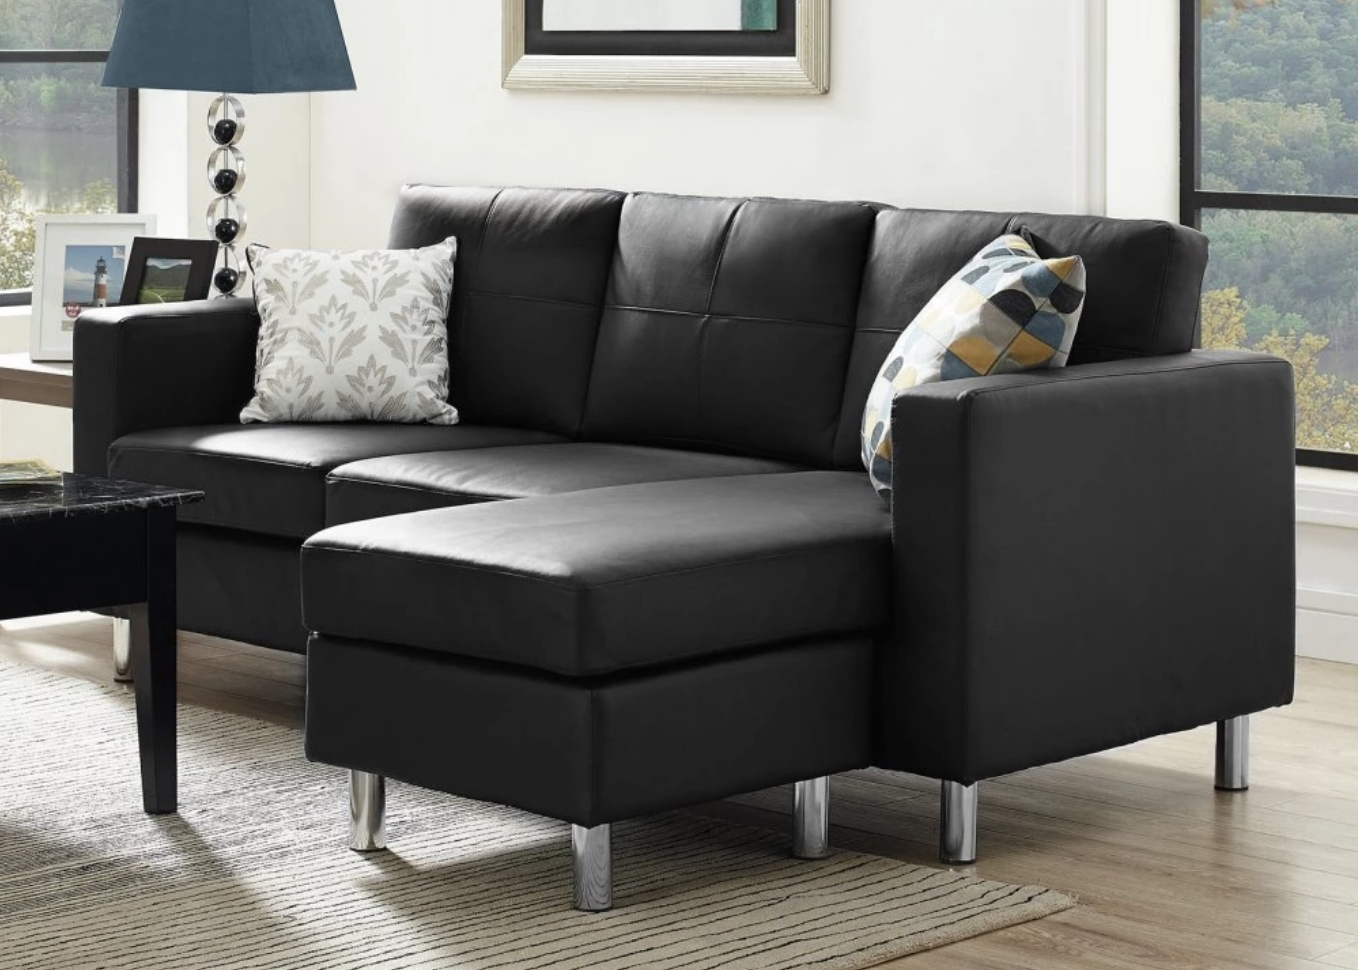 80x80 Sectional Sofas Intended For Well Known 75 Modern Sectional Sofas For Small Spaces (2018) (View 13 of 20)